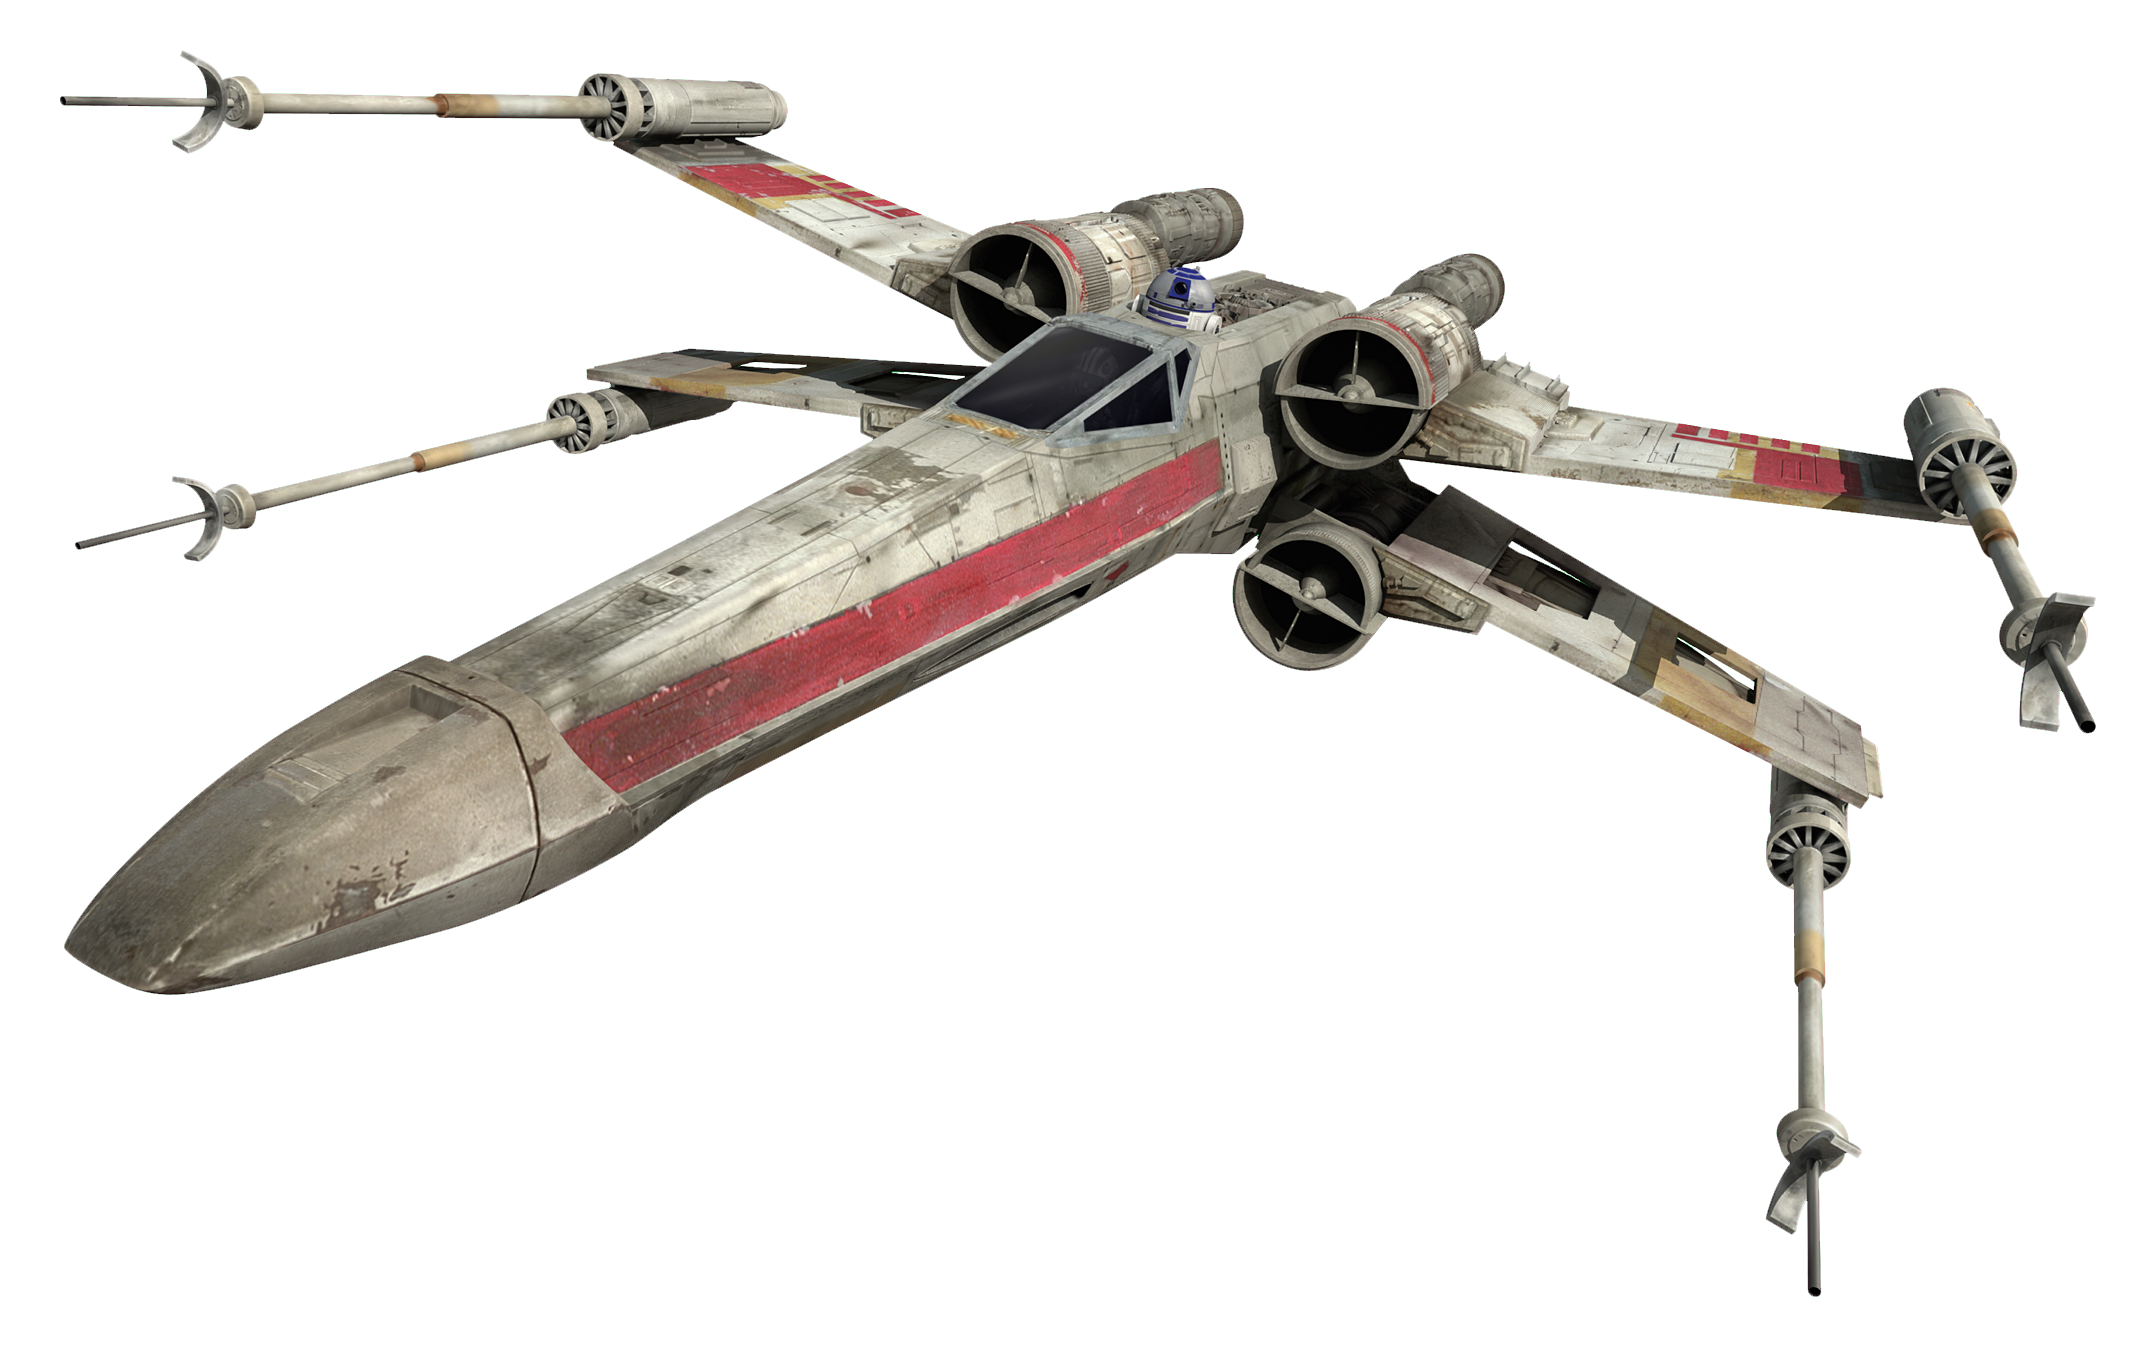 Image result for x-wing fighter